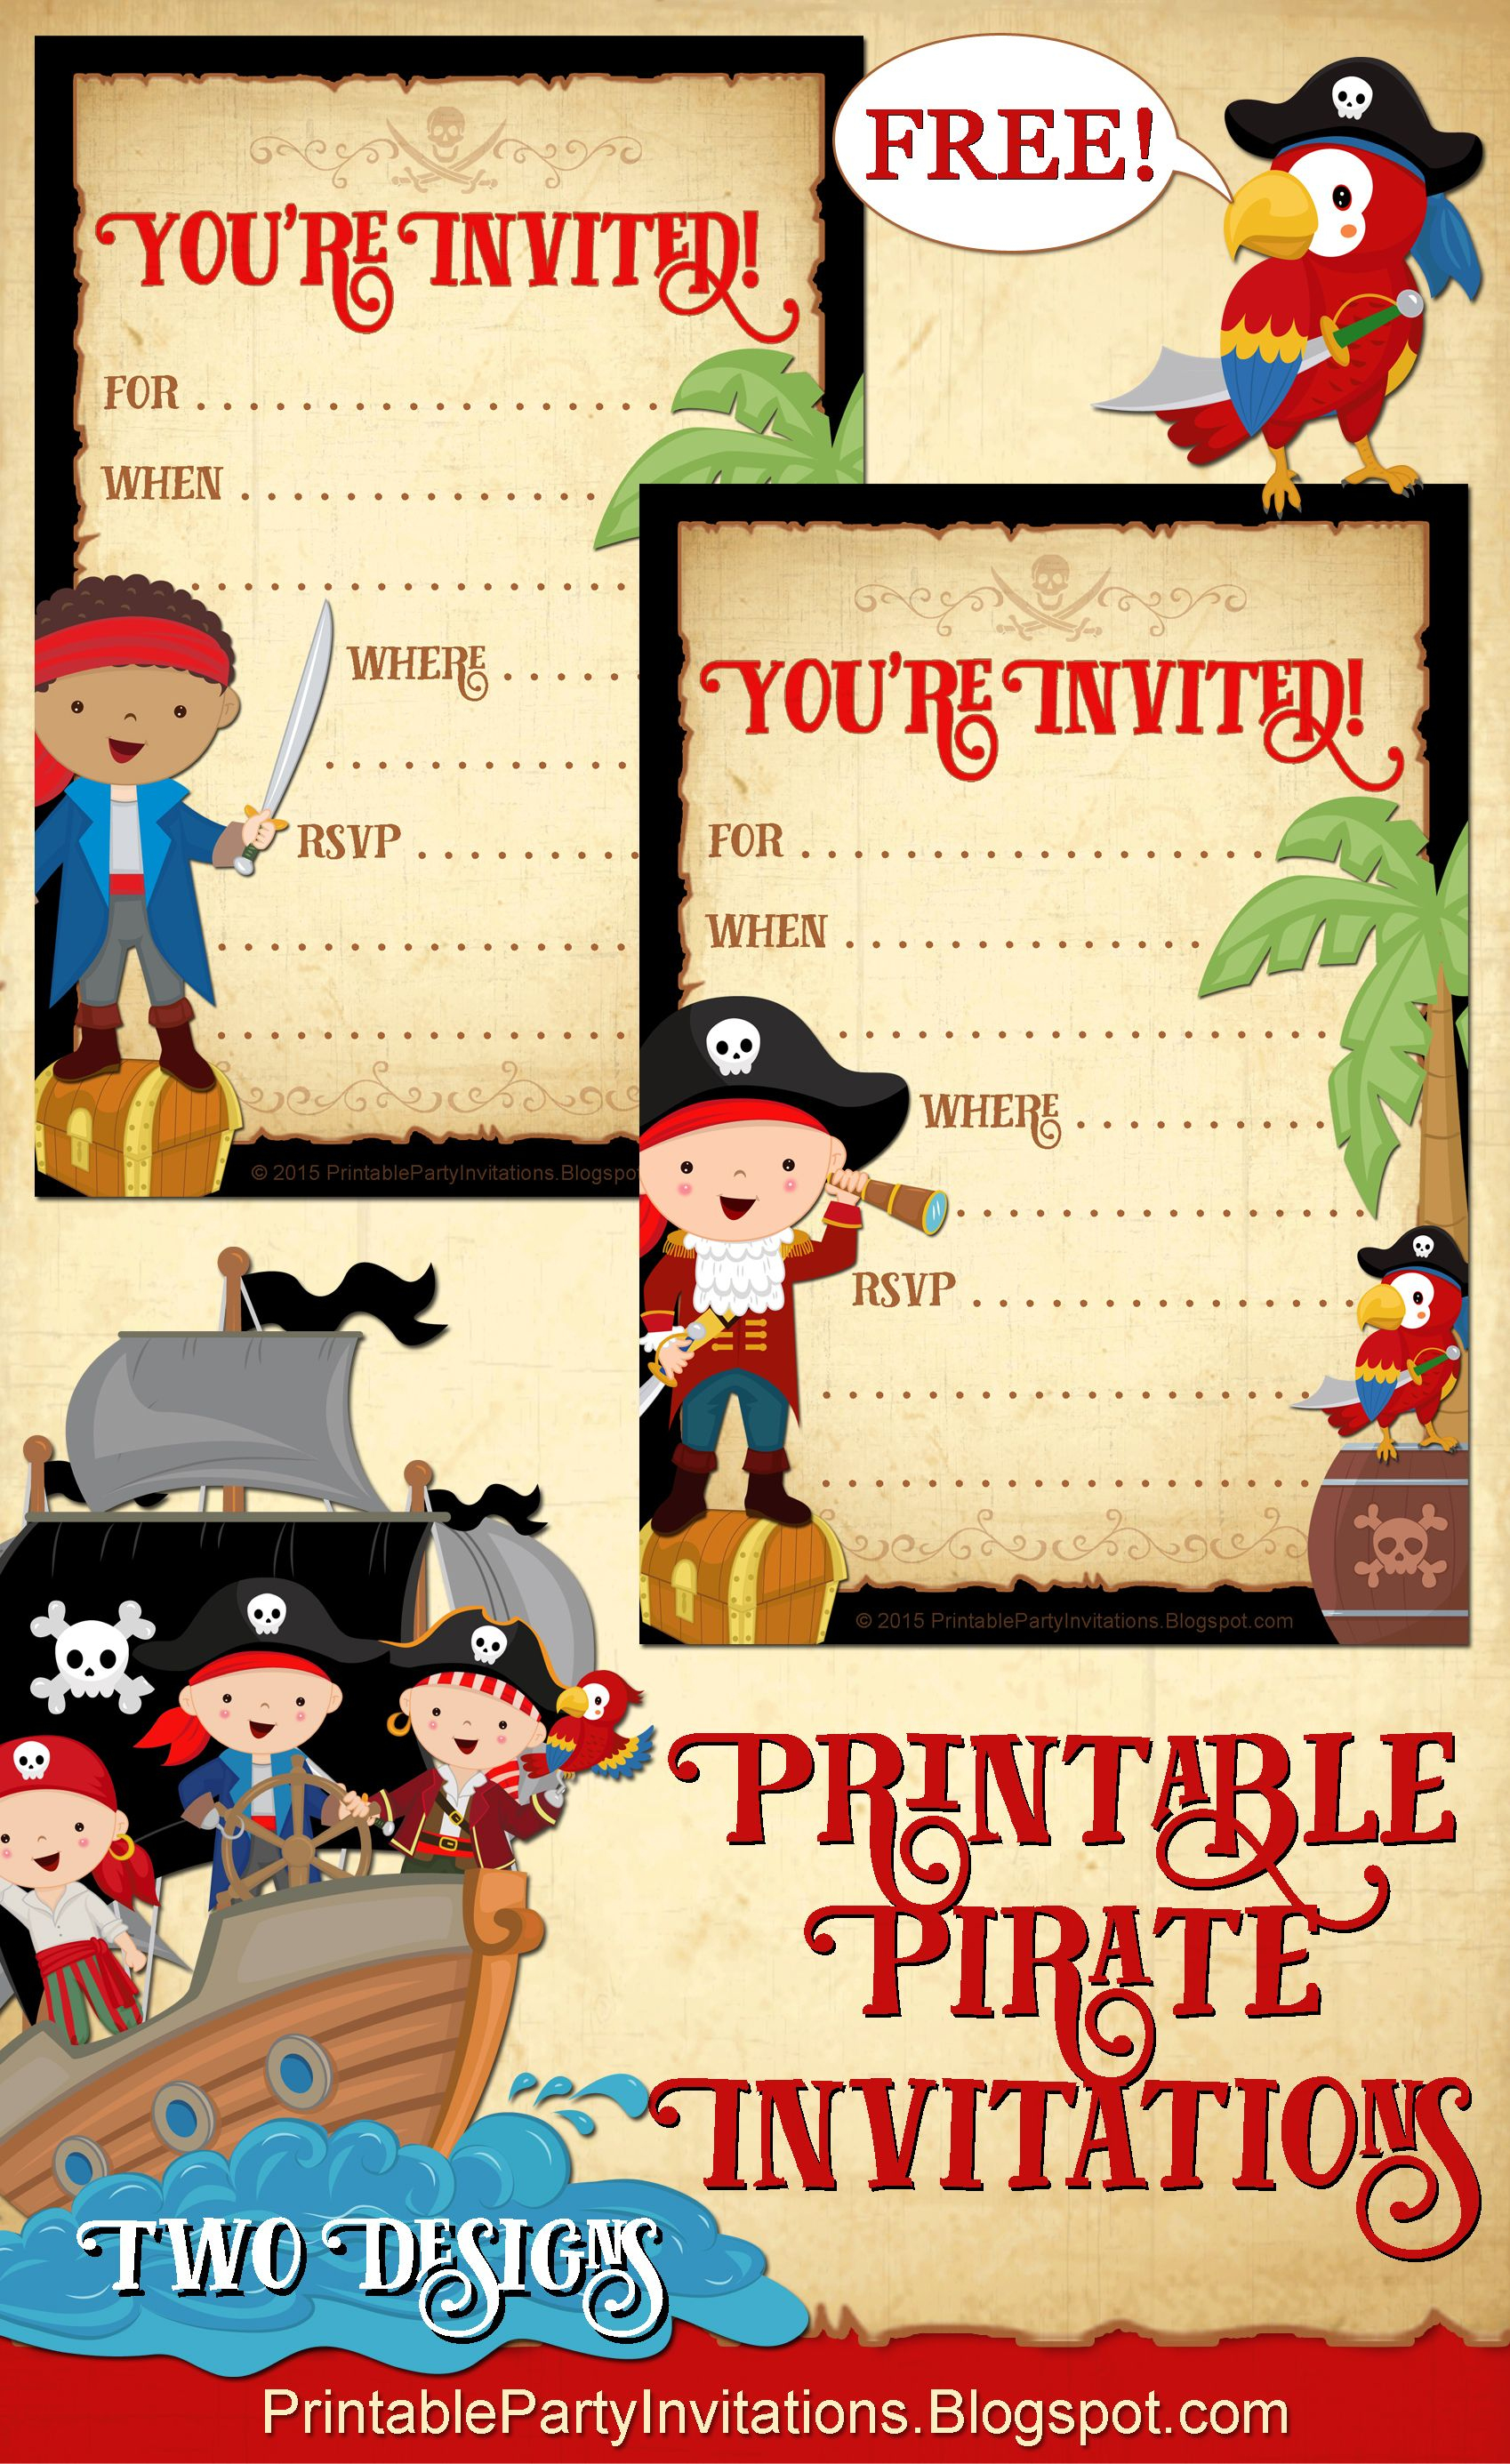 Free Printable Pirate Party Invitations -- 2 Designs | Party - Blue's Clues Invitations Free Printable